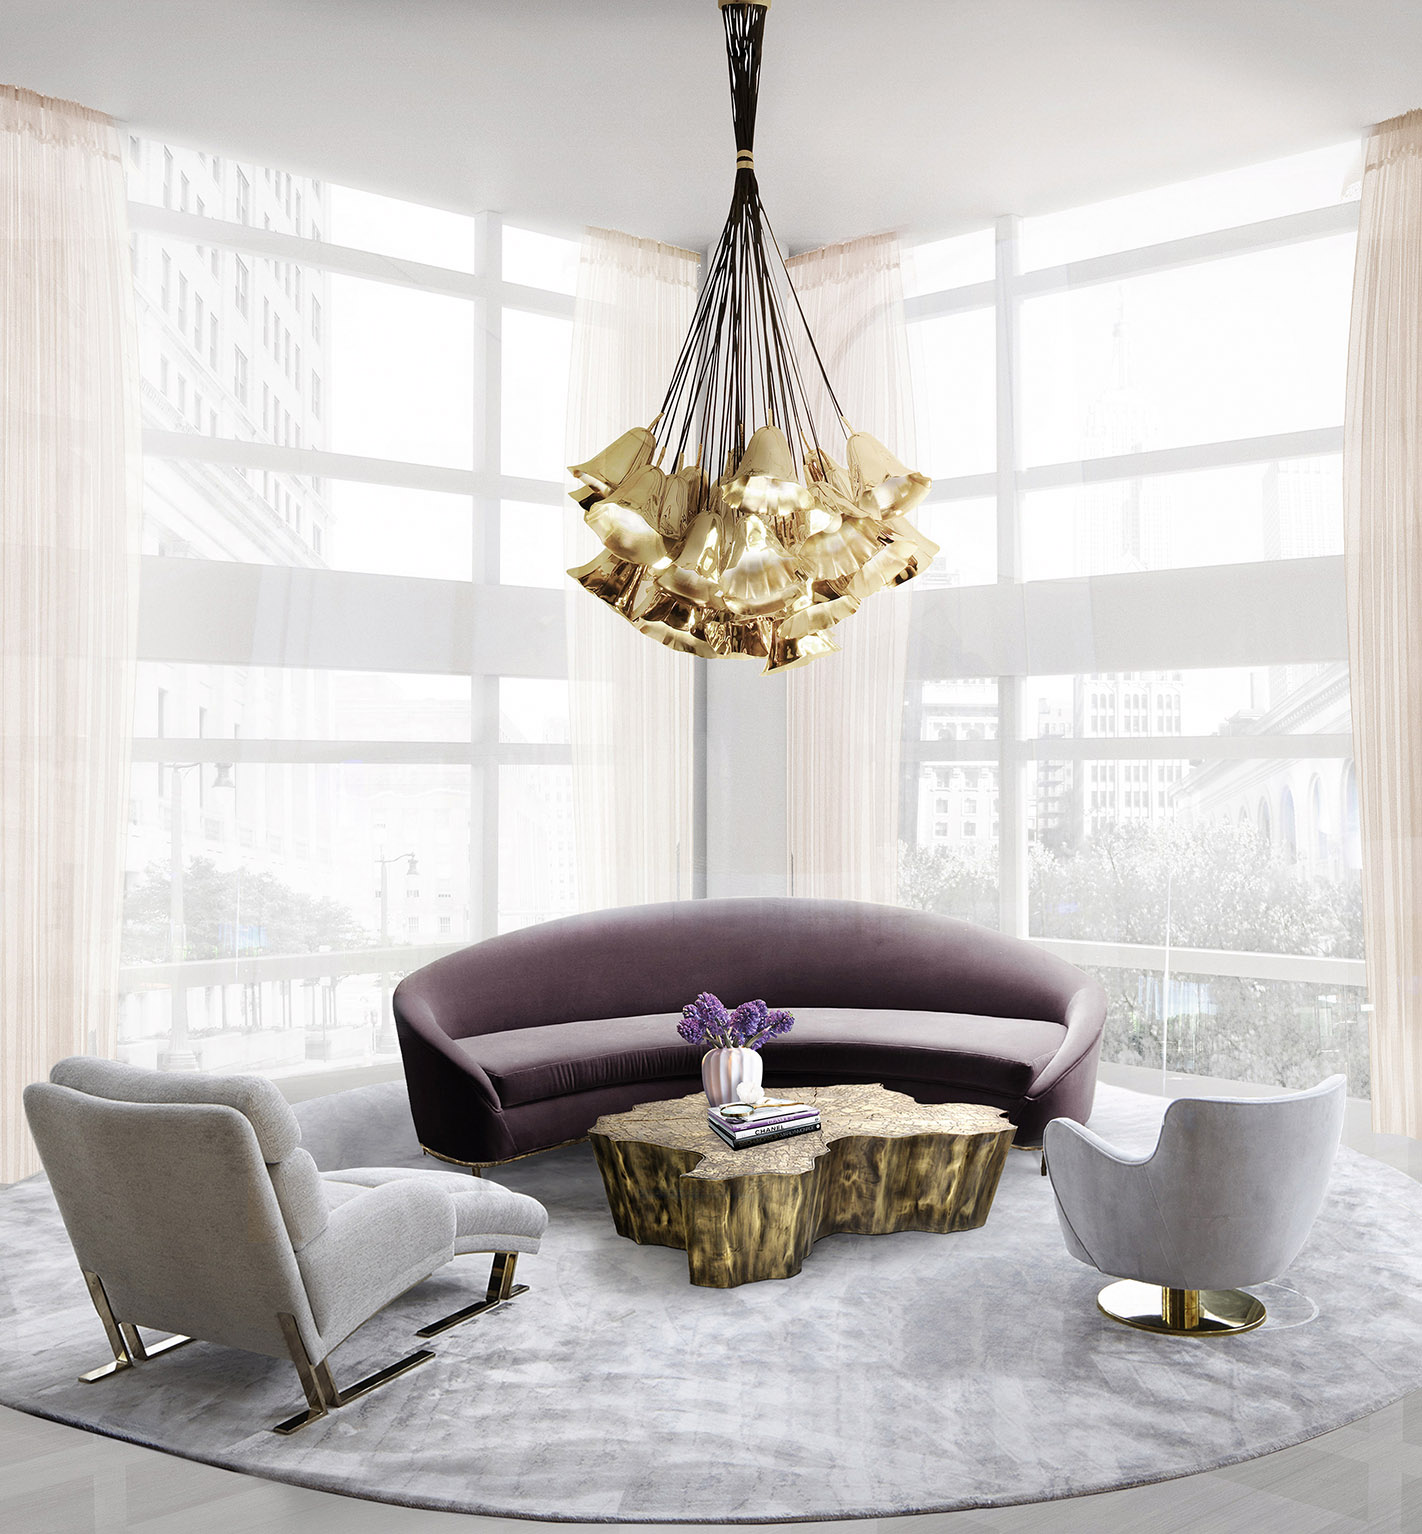 Living Room Furniture Pieces The Perfect Design Pieces By Koket To Create A Beautiful Living Room